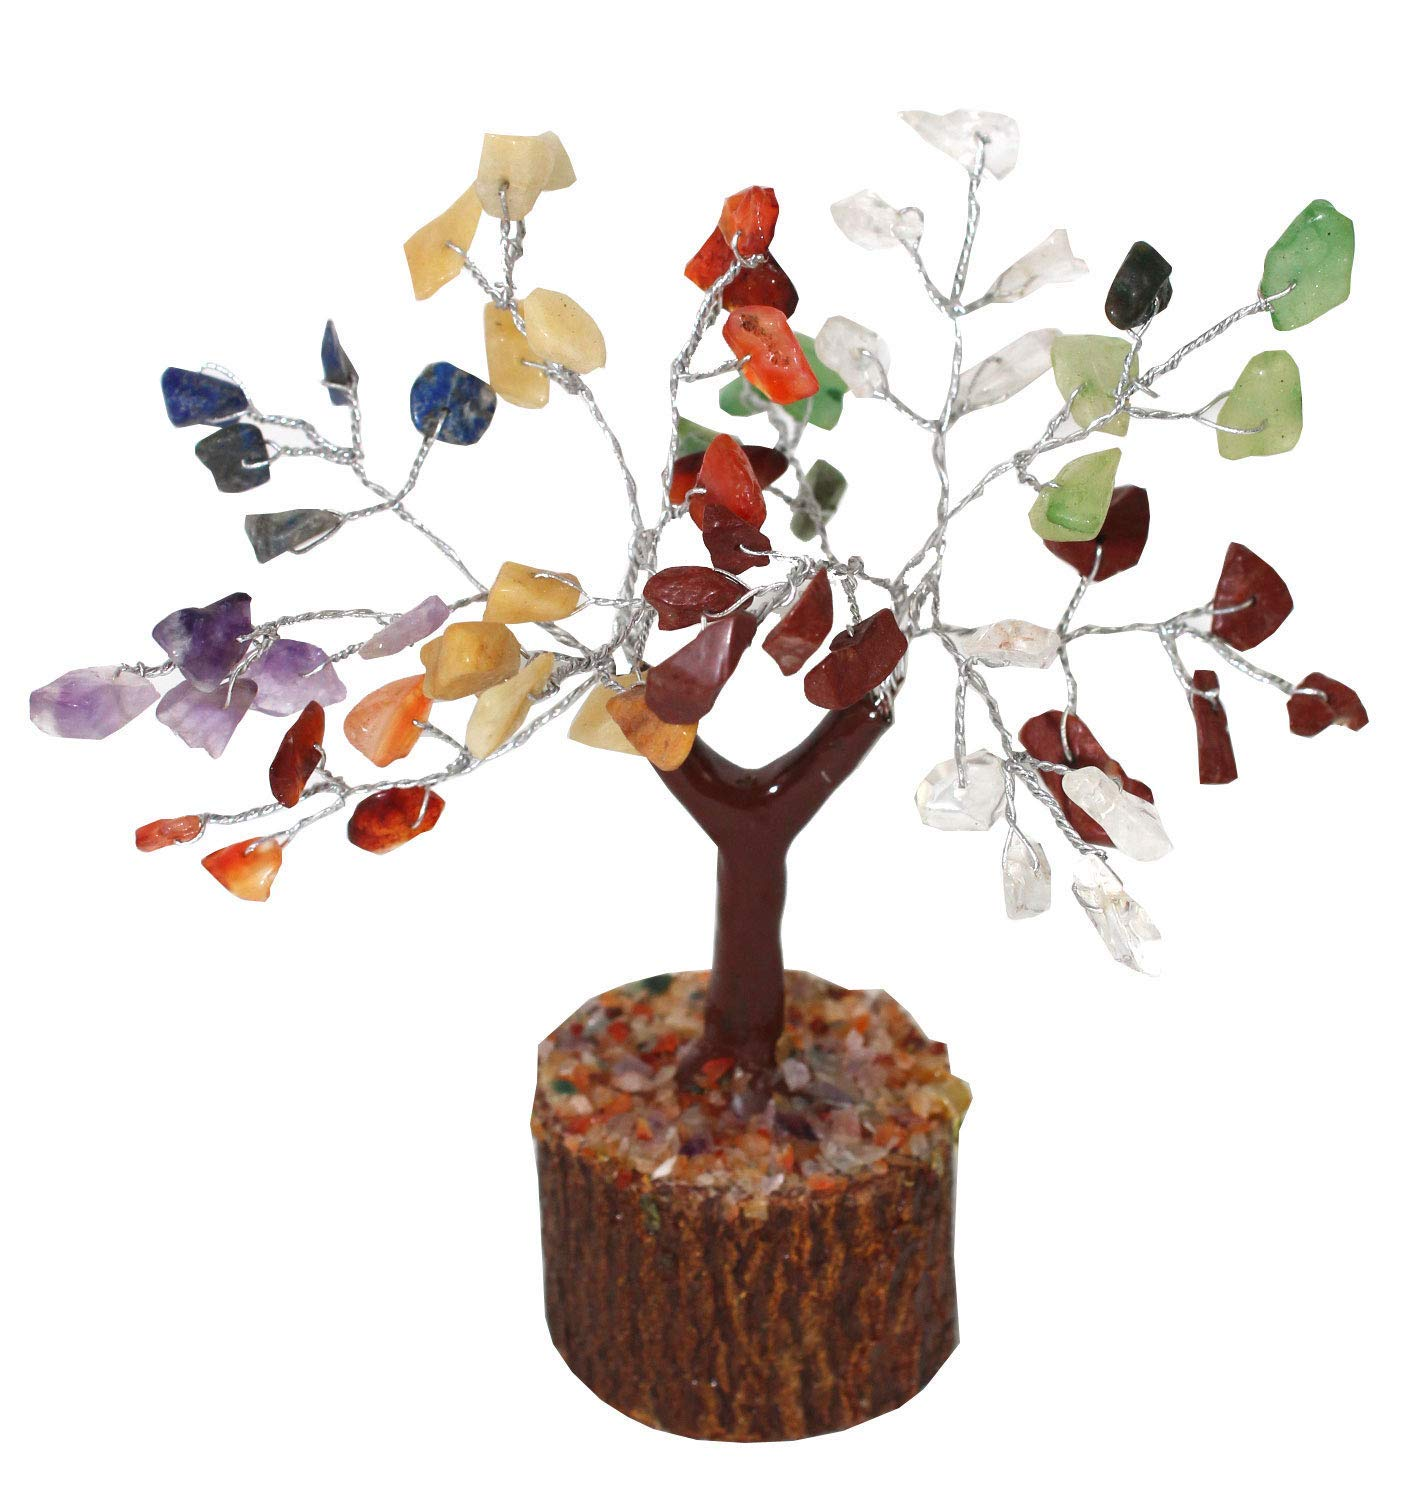 Creativegifts Natural Healing 60 Gemstone Crystal Bonsai Fortune Tree for Good Luck Wealth Prosperity Multi-Mix